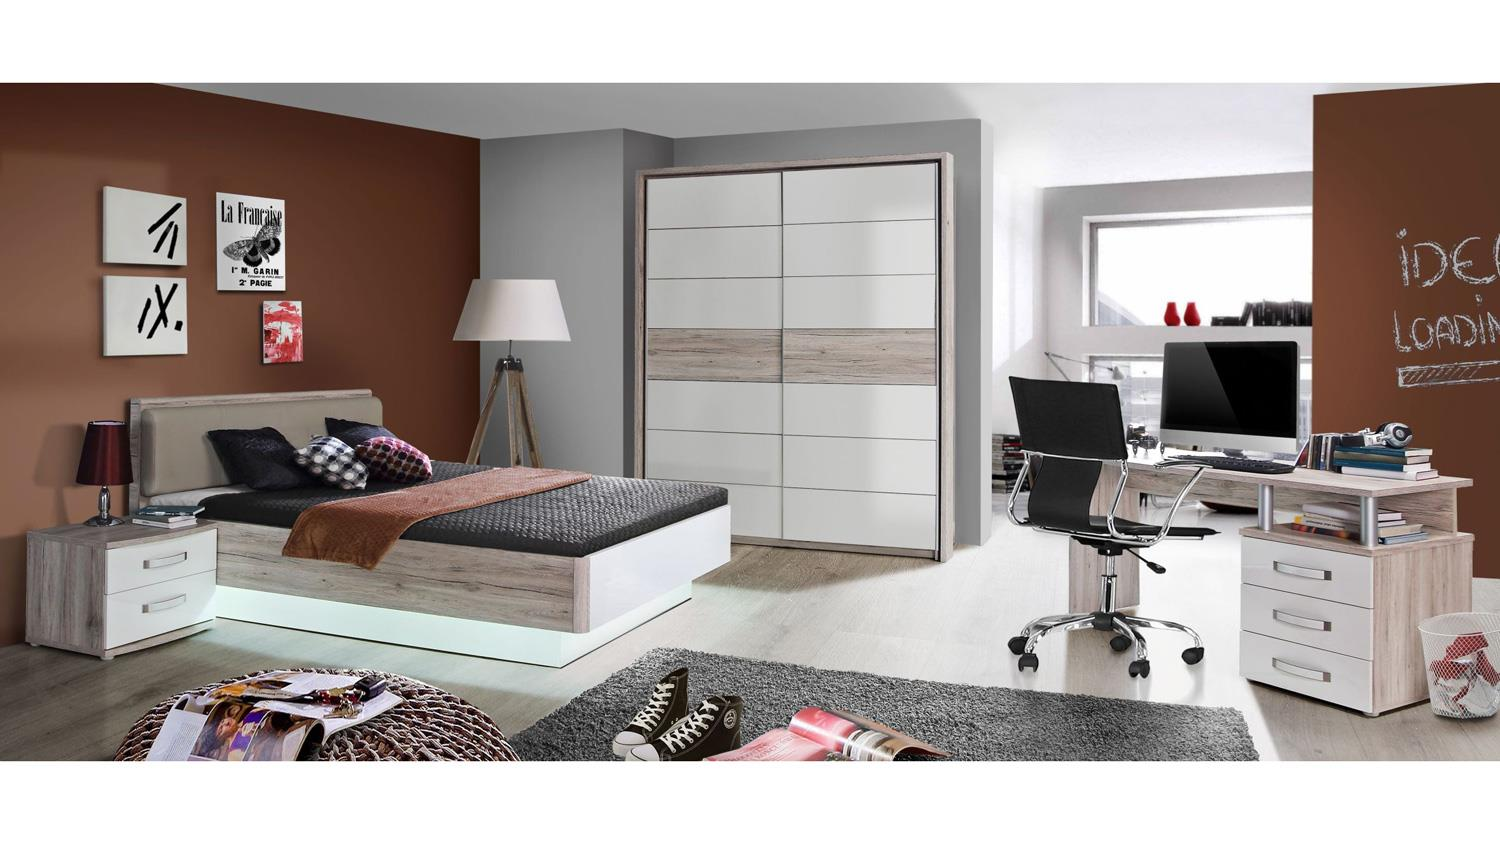 bett rondino jugendzimmerbett in sandeiche und wei hochglanz 140x200. Black Bedroom Furniture Sets. Home Design Ideas